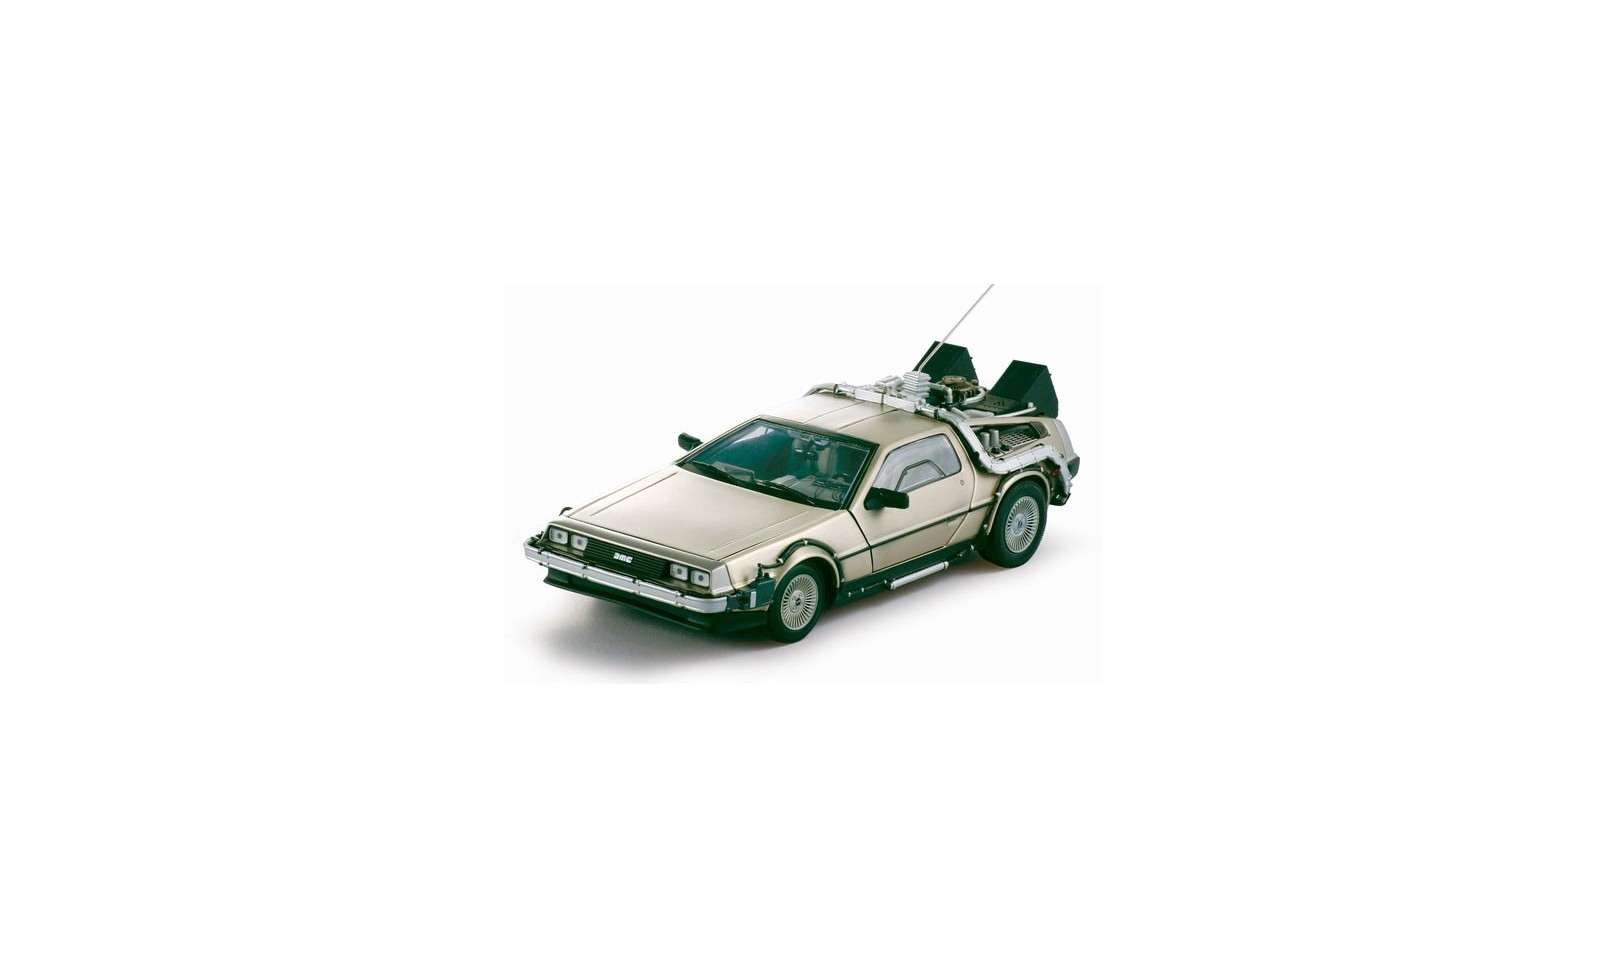 retour vers le futur 2 r plique delorean lk coupe 1983 25 cm voiture film cin ma. Black Bedroom Furniture Sets. Home Design Ideas